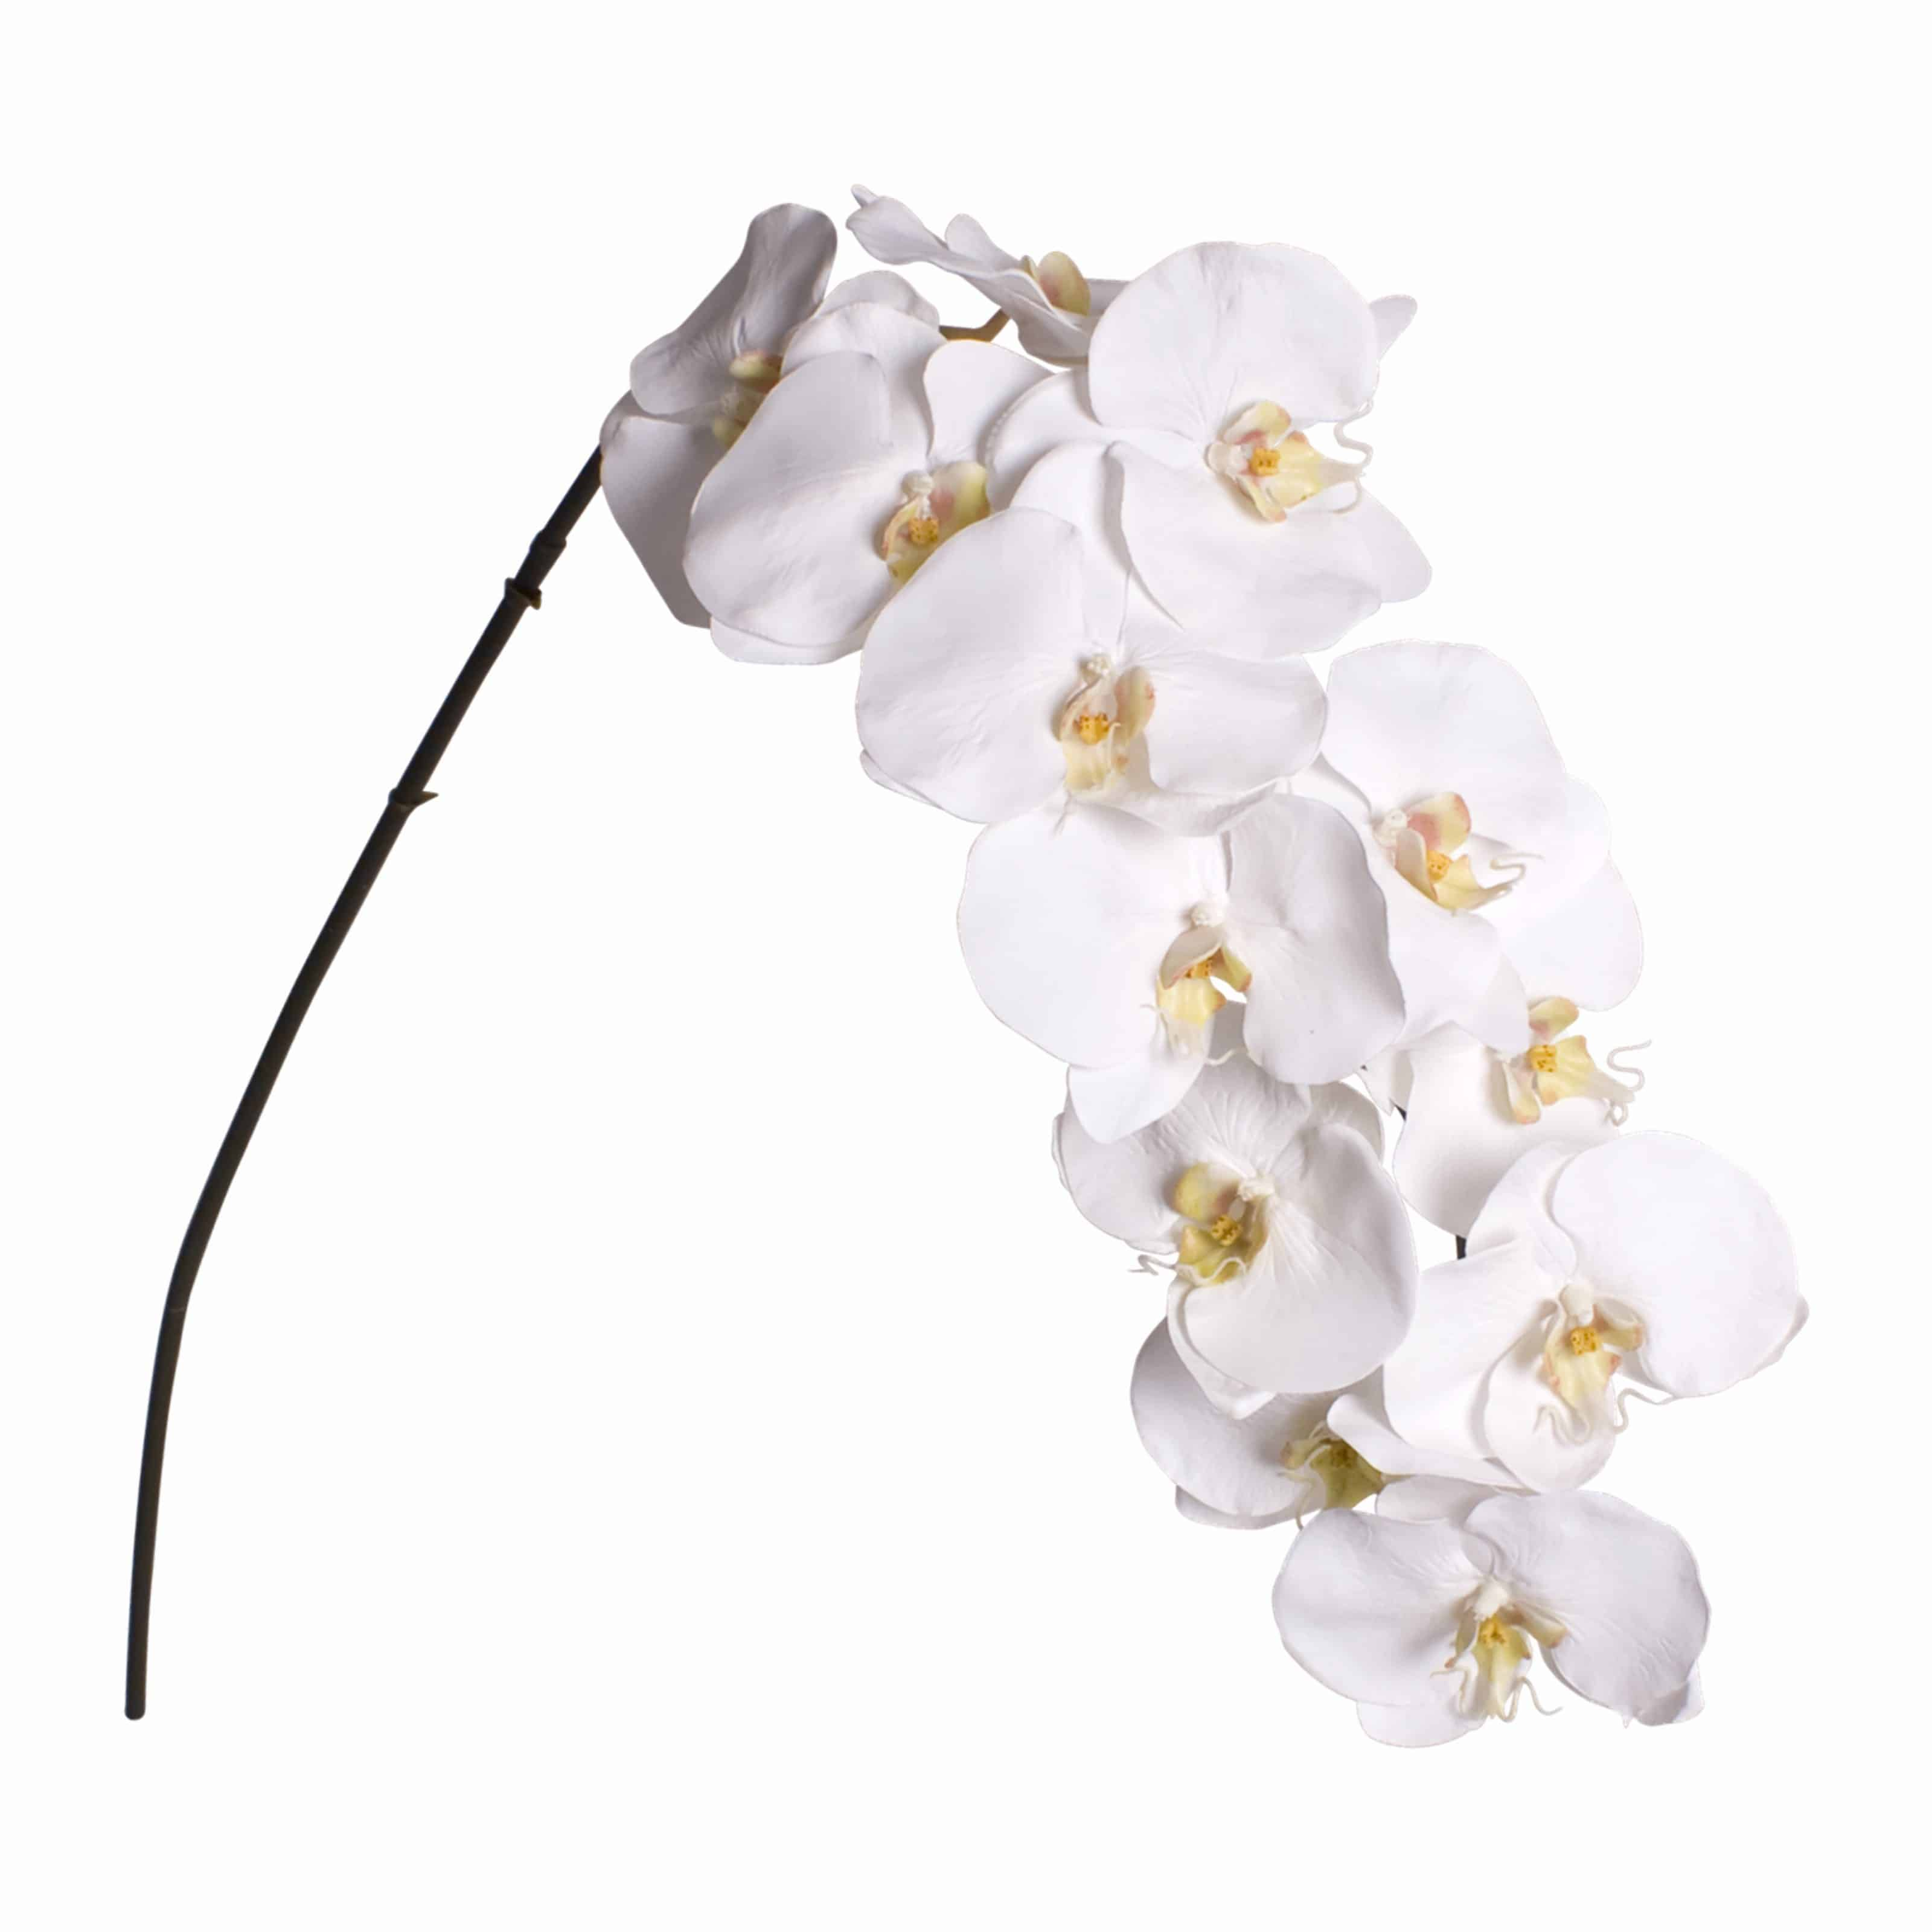 Buy classic white phalaenopsis orchid faux flower for your arrangements. Incredibly detailed lifelike pollen